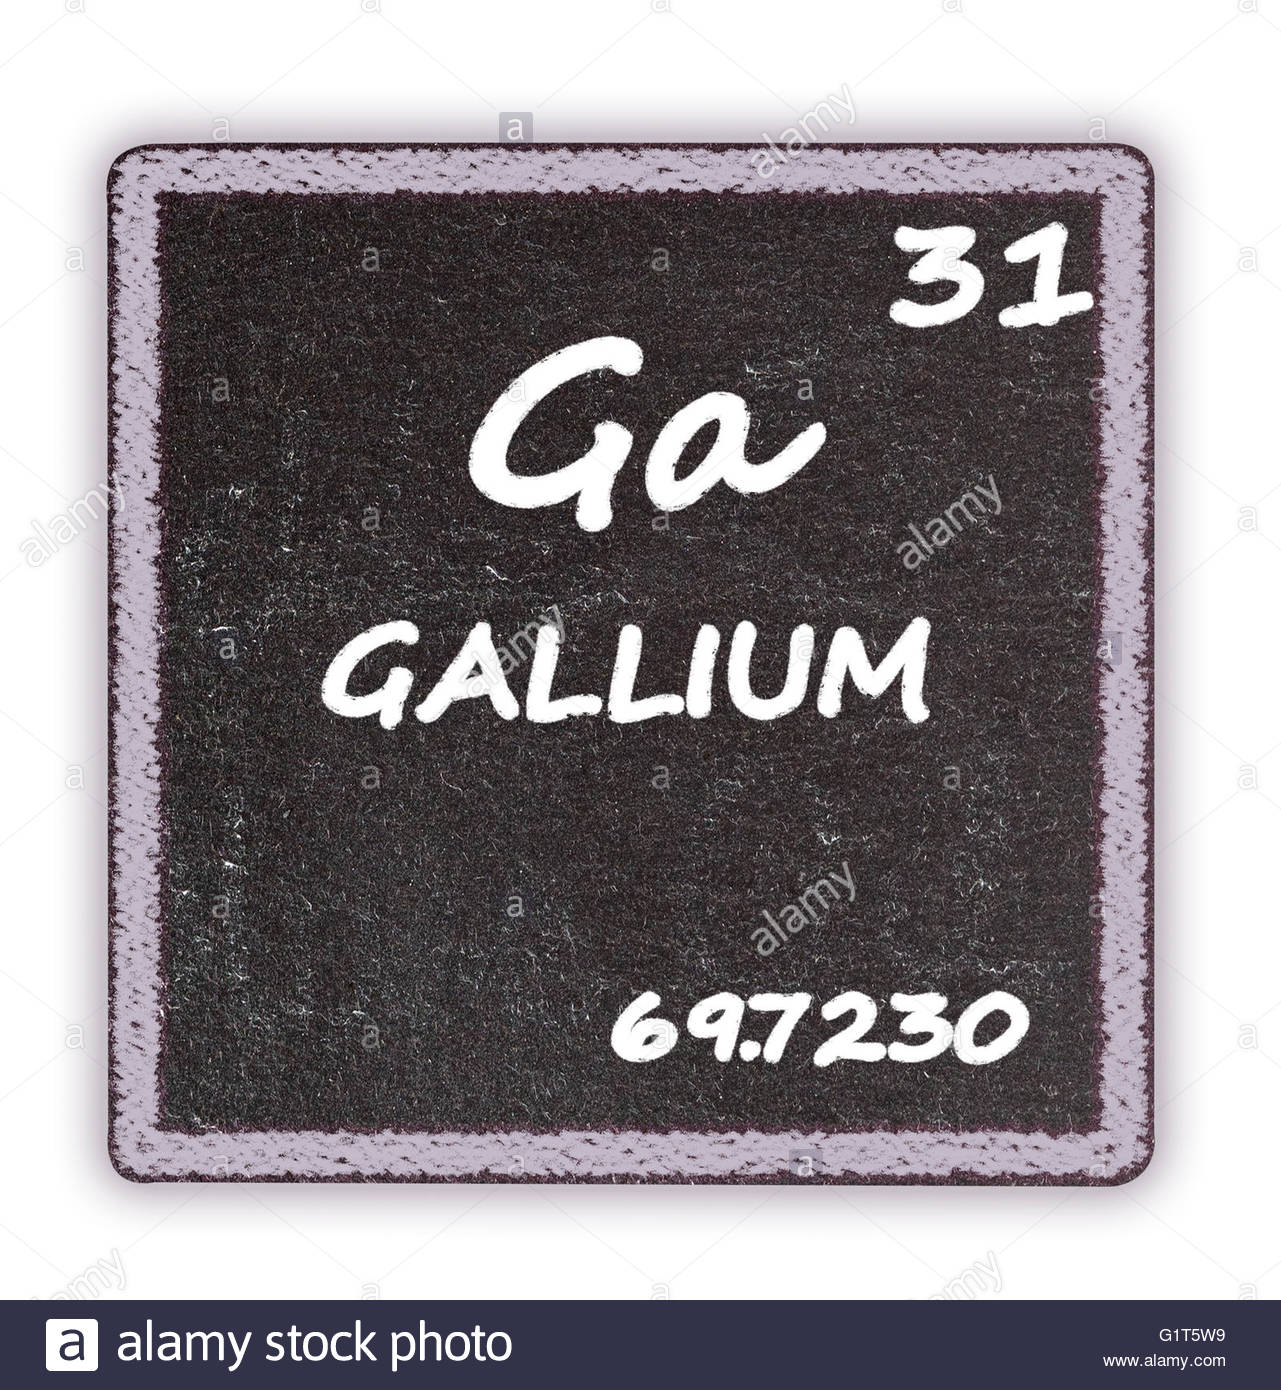 Gallium Chemical Element Stock Photos Gallium Chemical Element